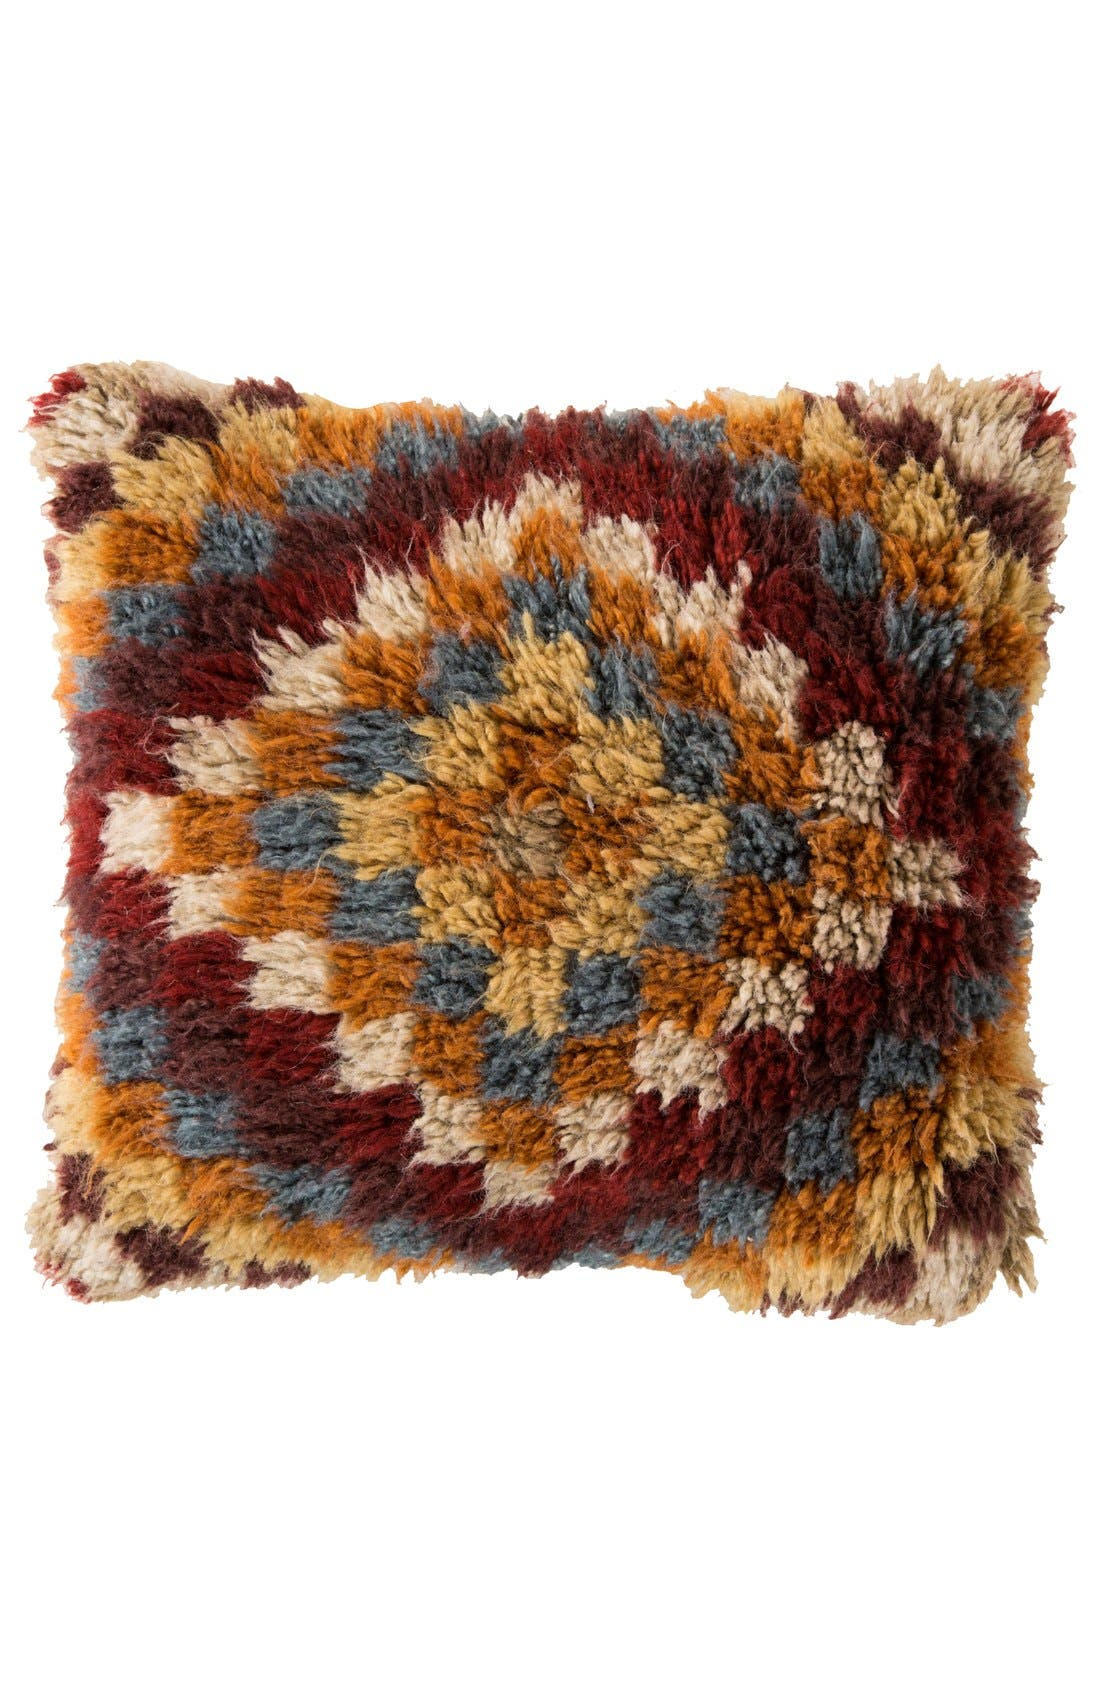 Main Image - Surya Home 'Mammoth' Wool Accent Pillow